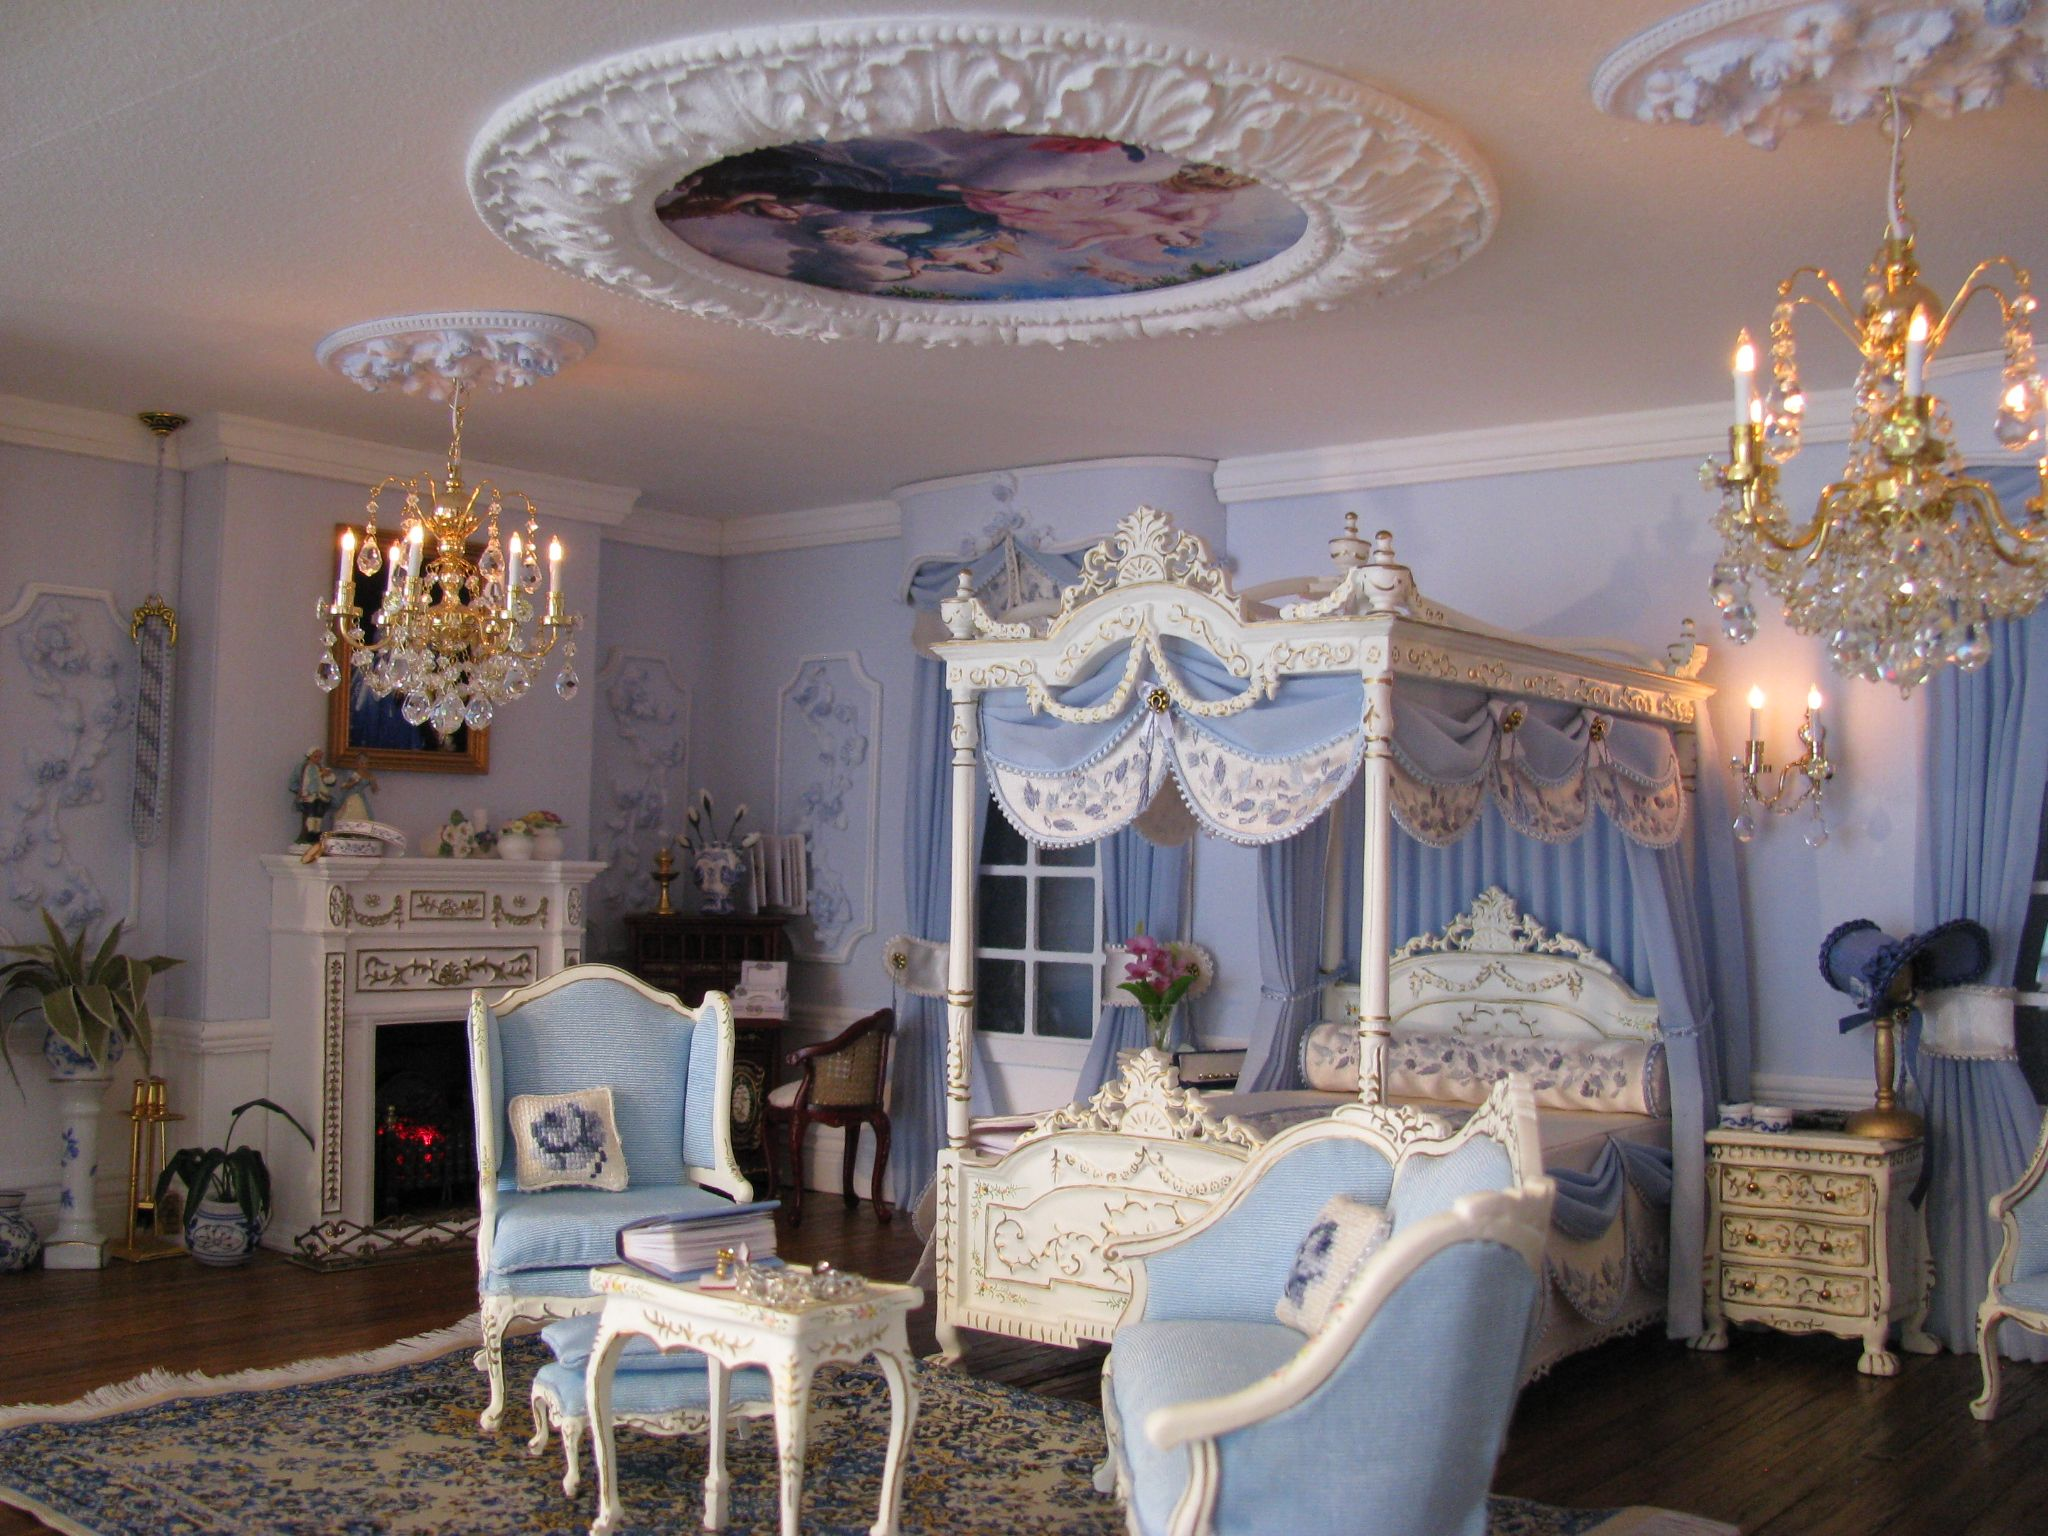 Another French themed bedroom.